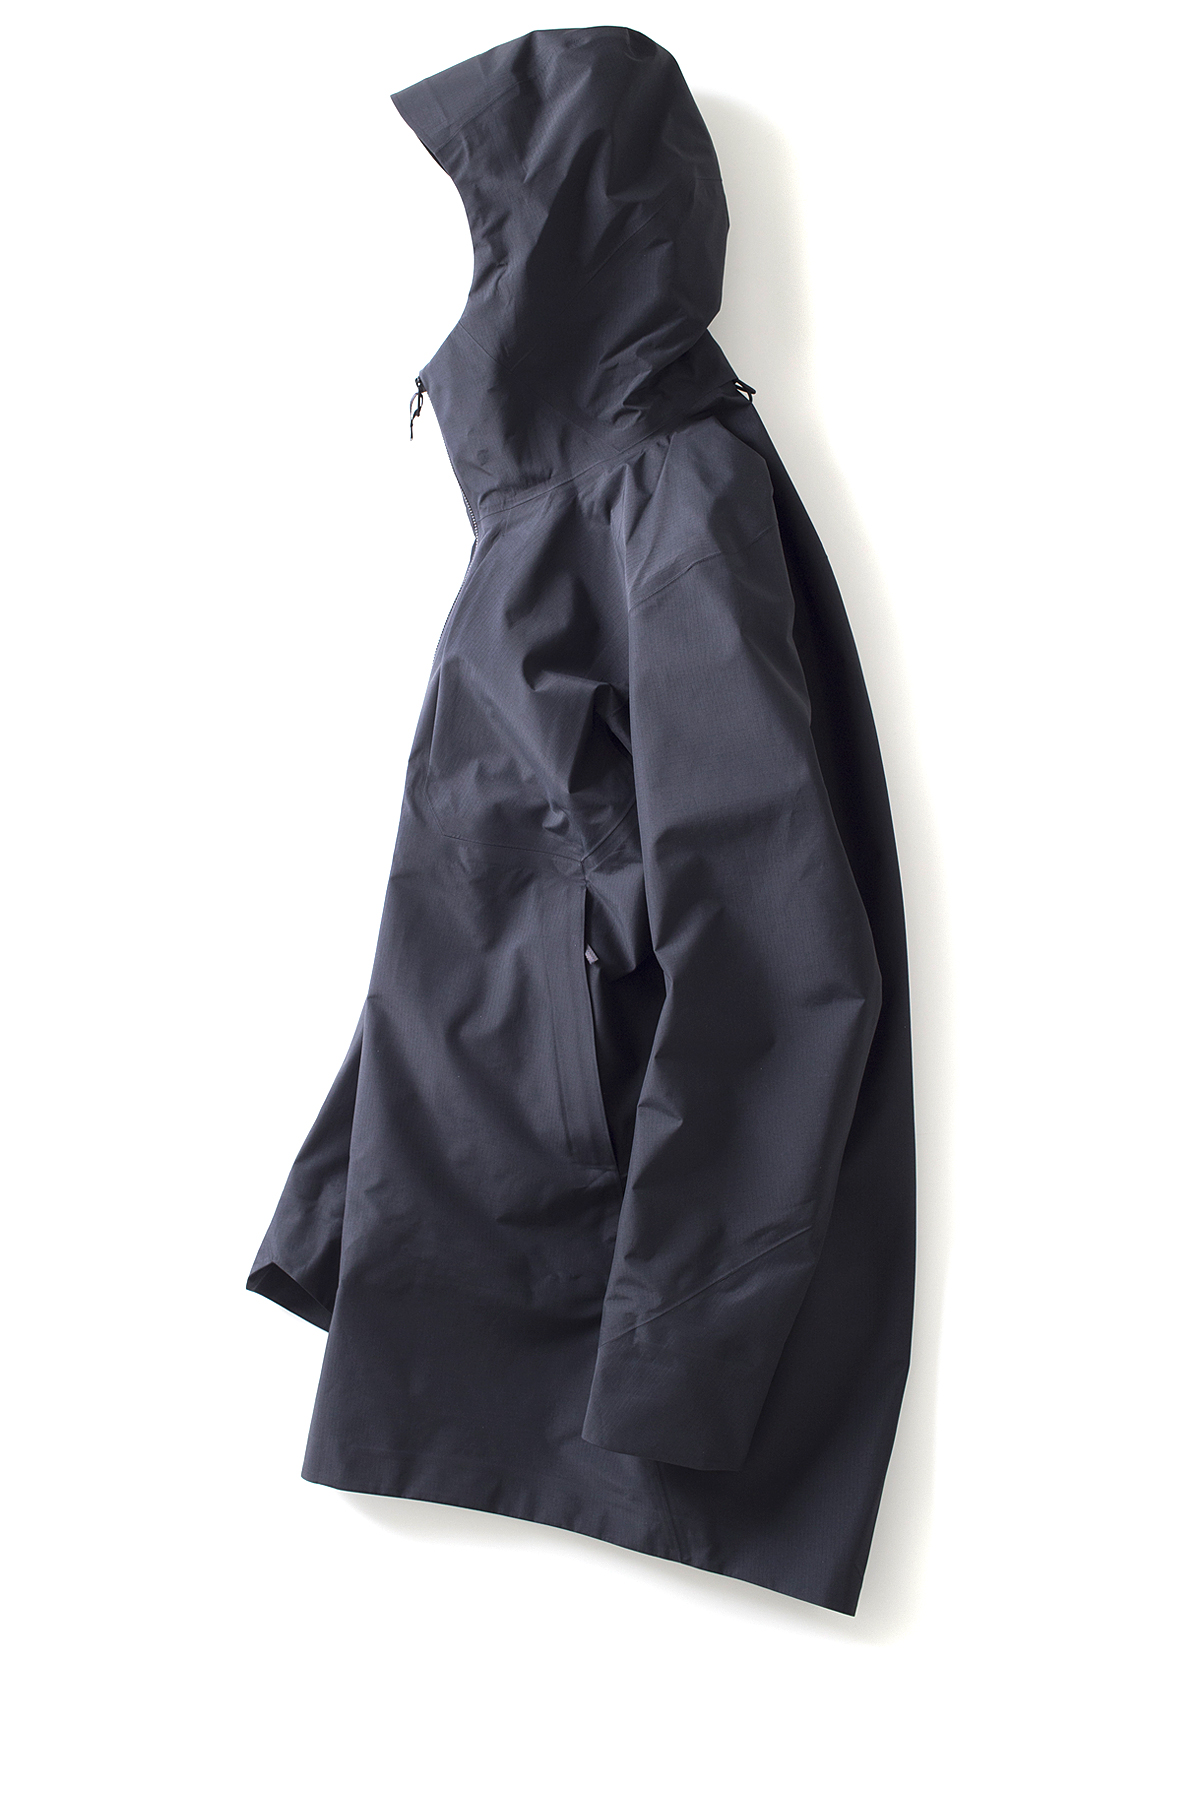 ARC'TERYX VEILANCE : Monitor Coat M (Black)